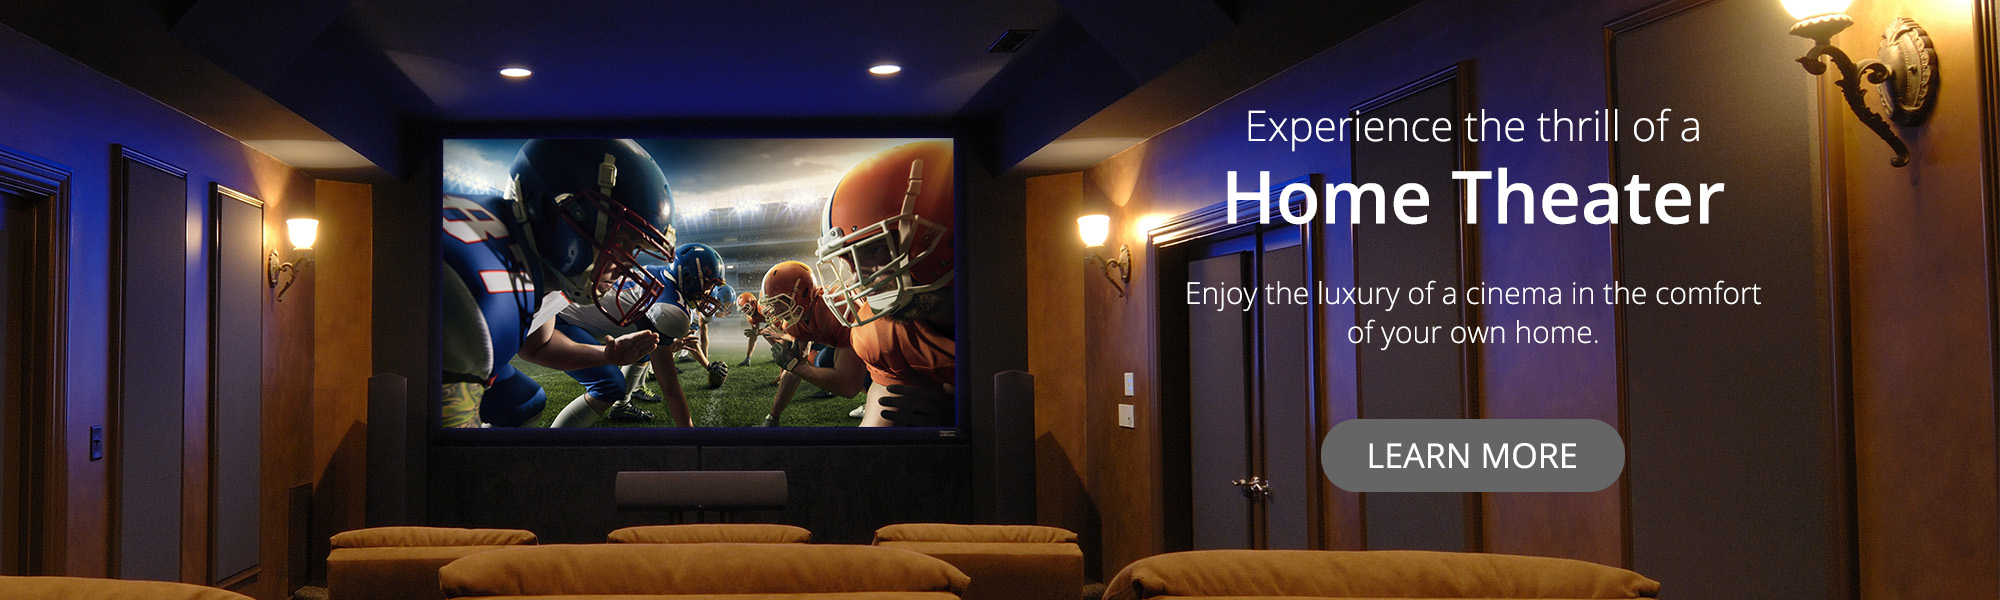 Experience the thrill of a Home Theater